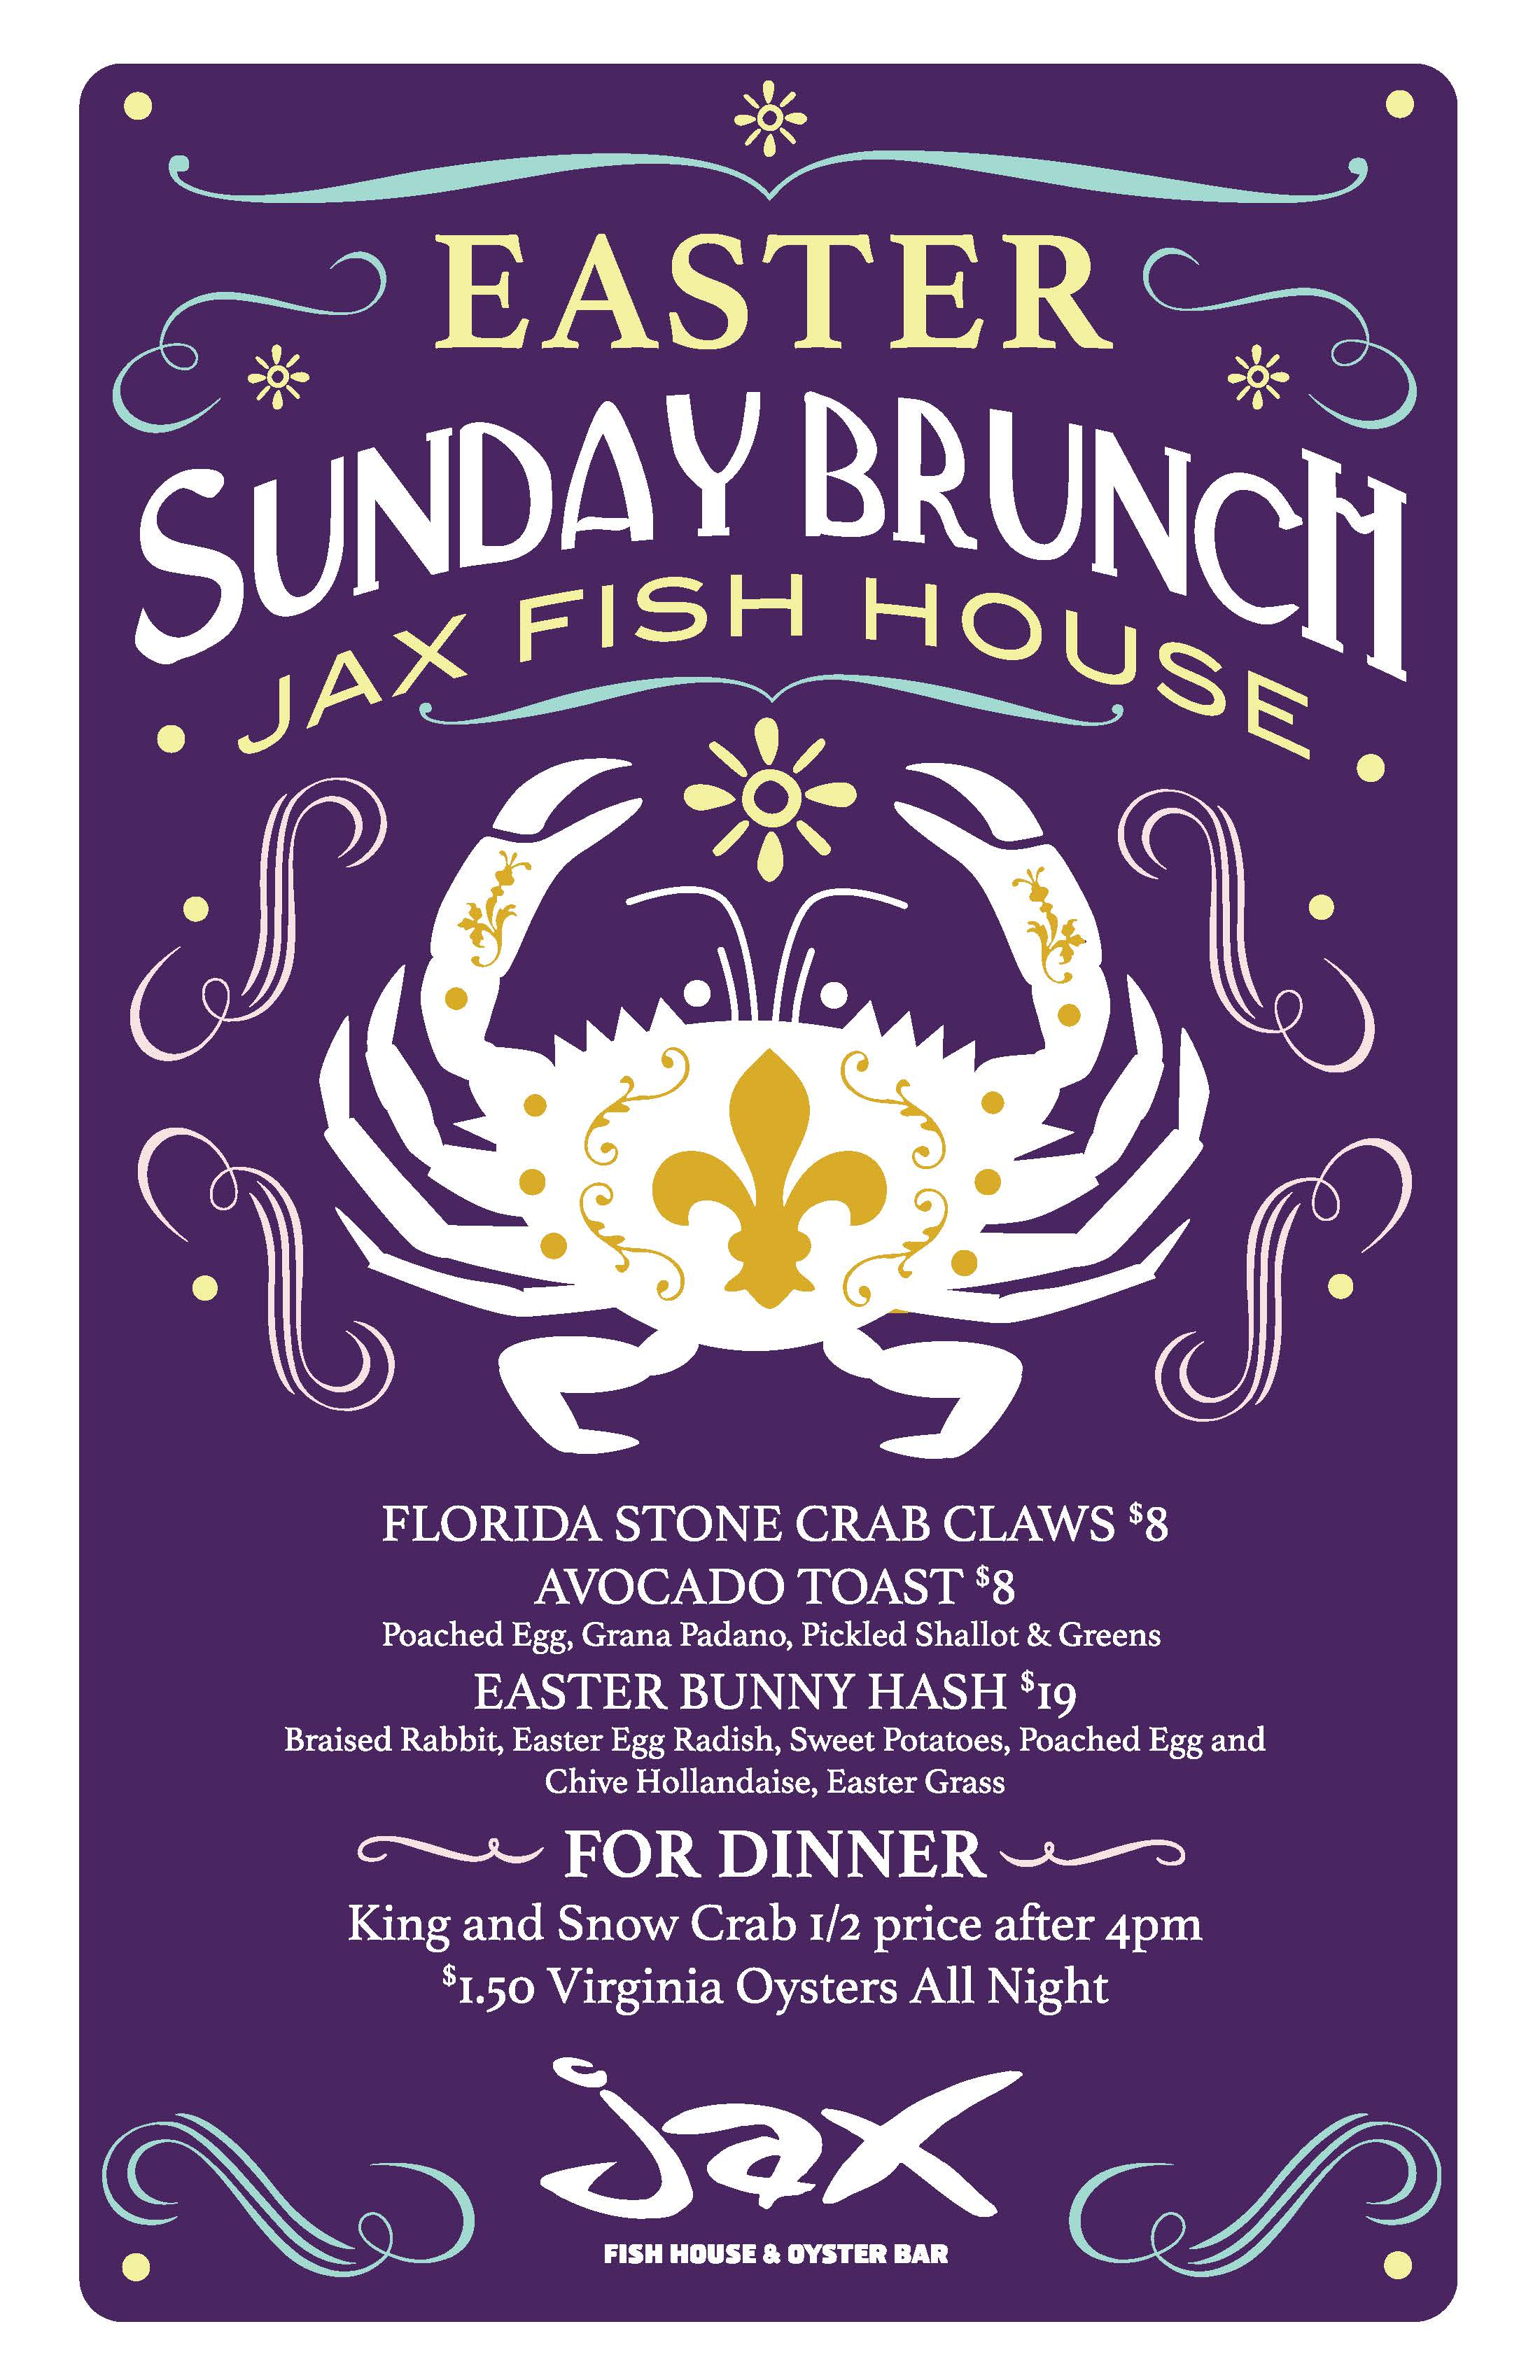 Jax fish house creates custom easter dishes for brunch on for Jax fish house kansas city